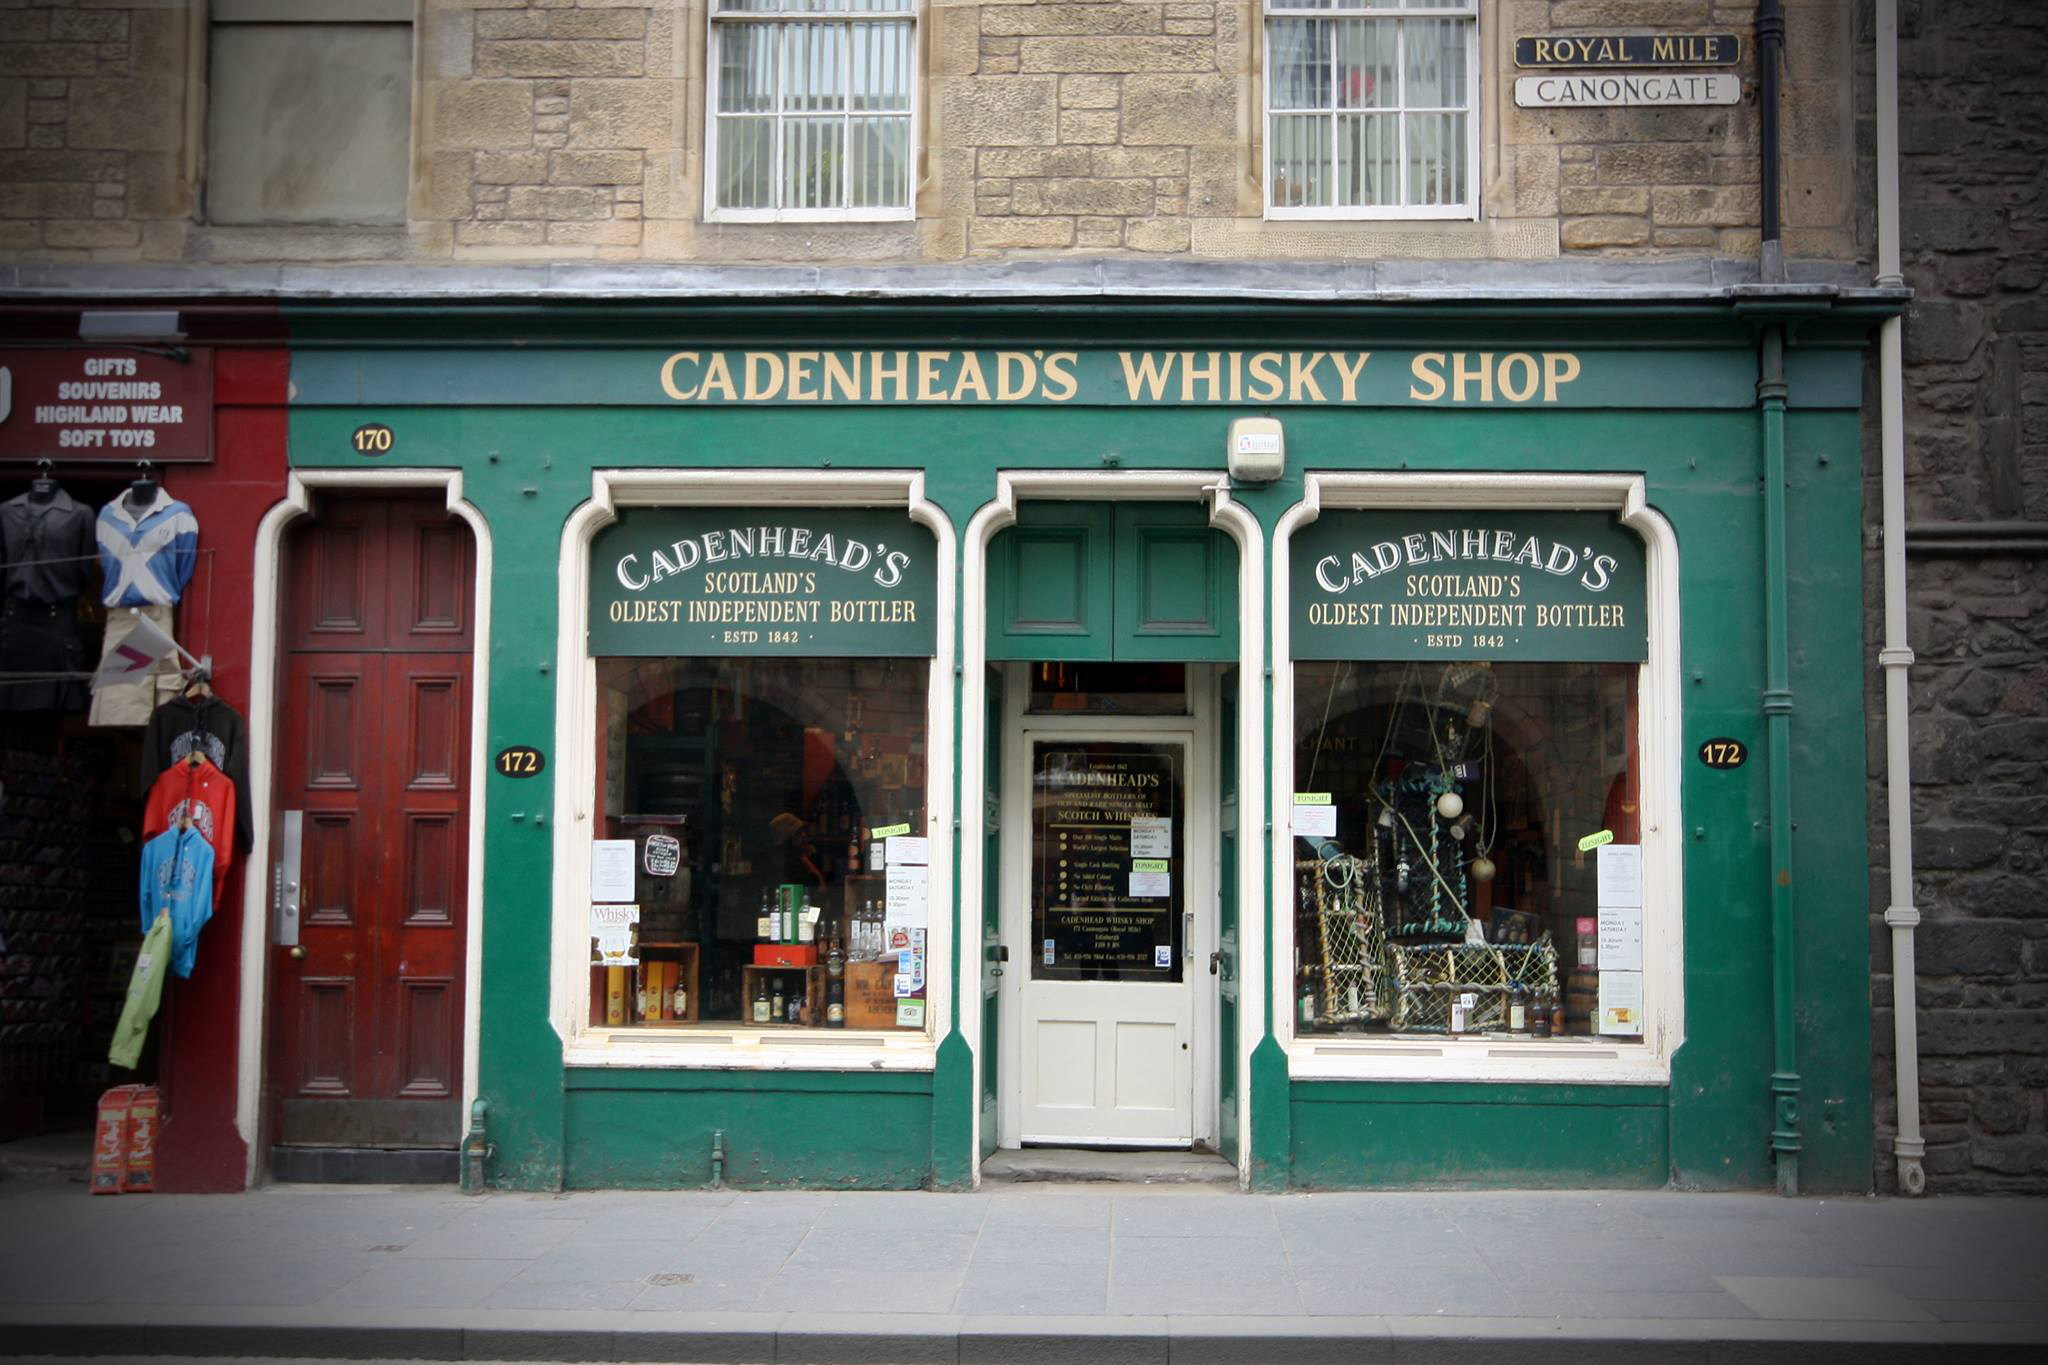 The green shopfront of Cadenheads Whisky Shop, Edinburgh